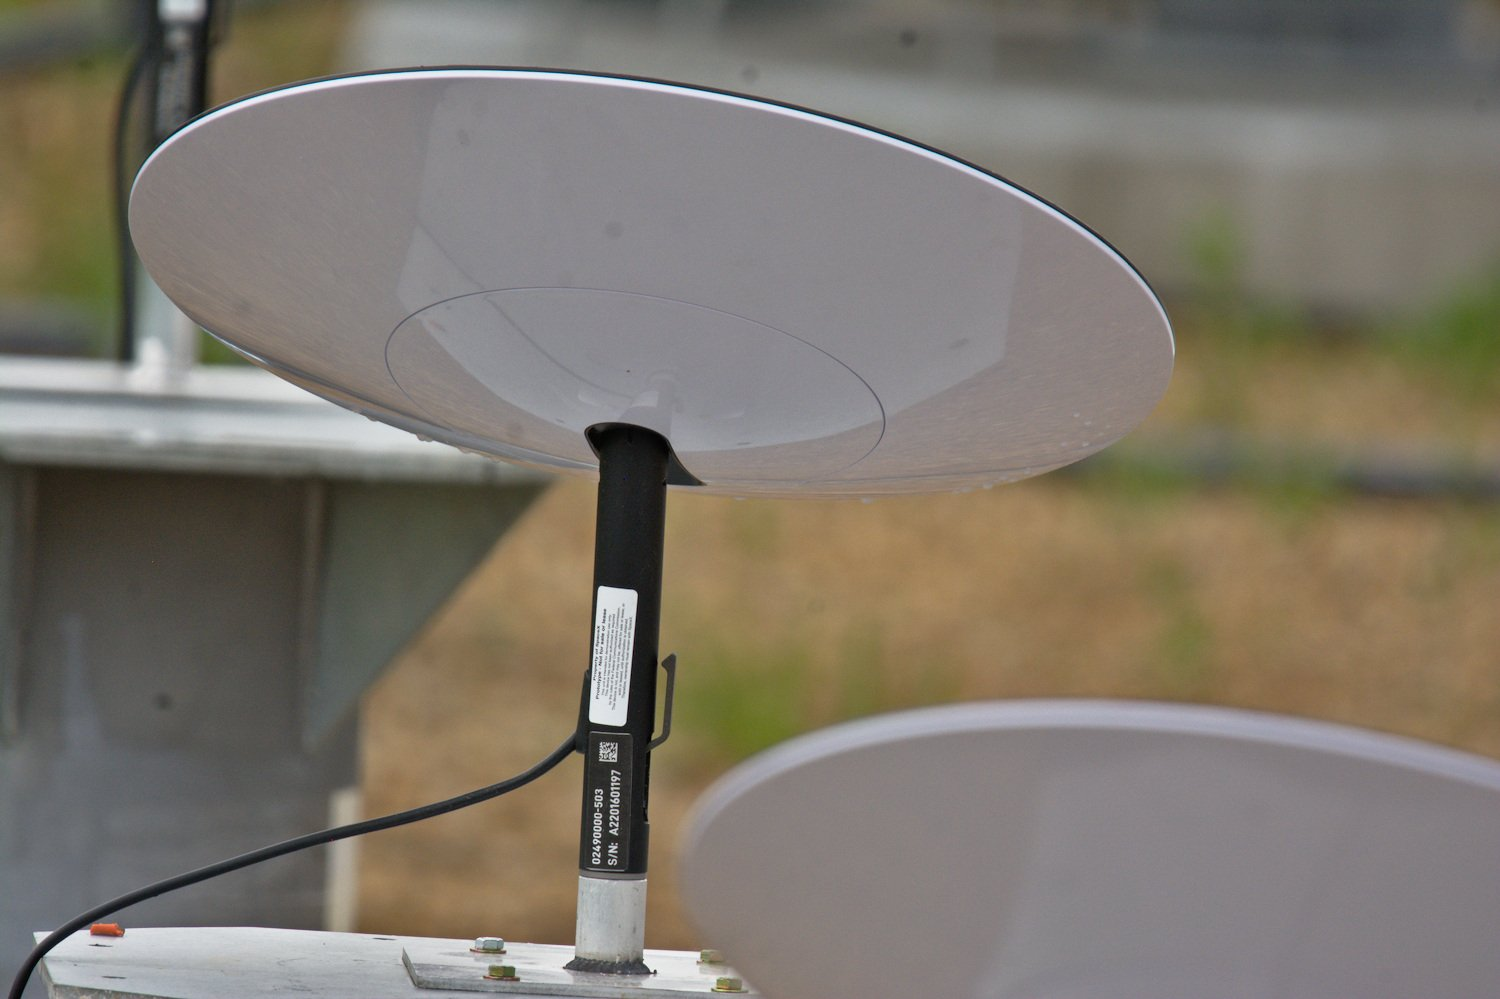 Starlink User Dish Uses Processor Cores Often Found In Entry Level Smartphones